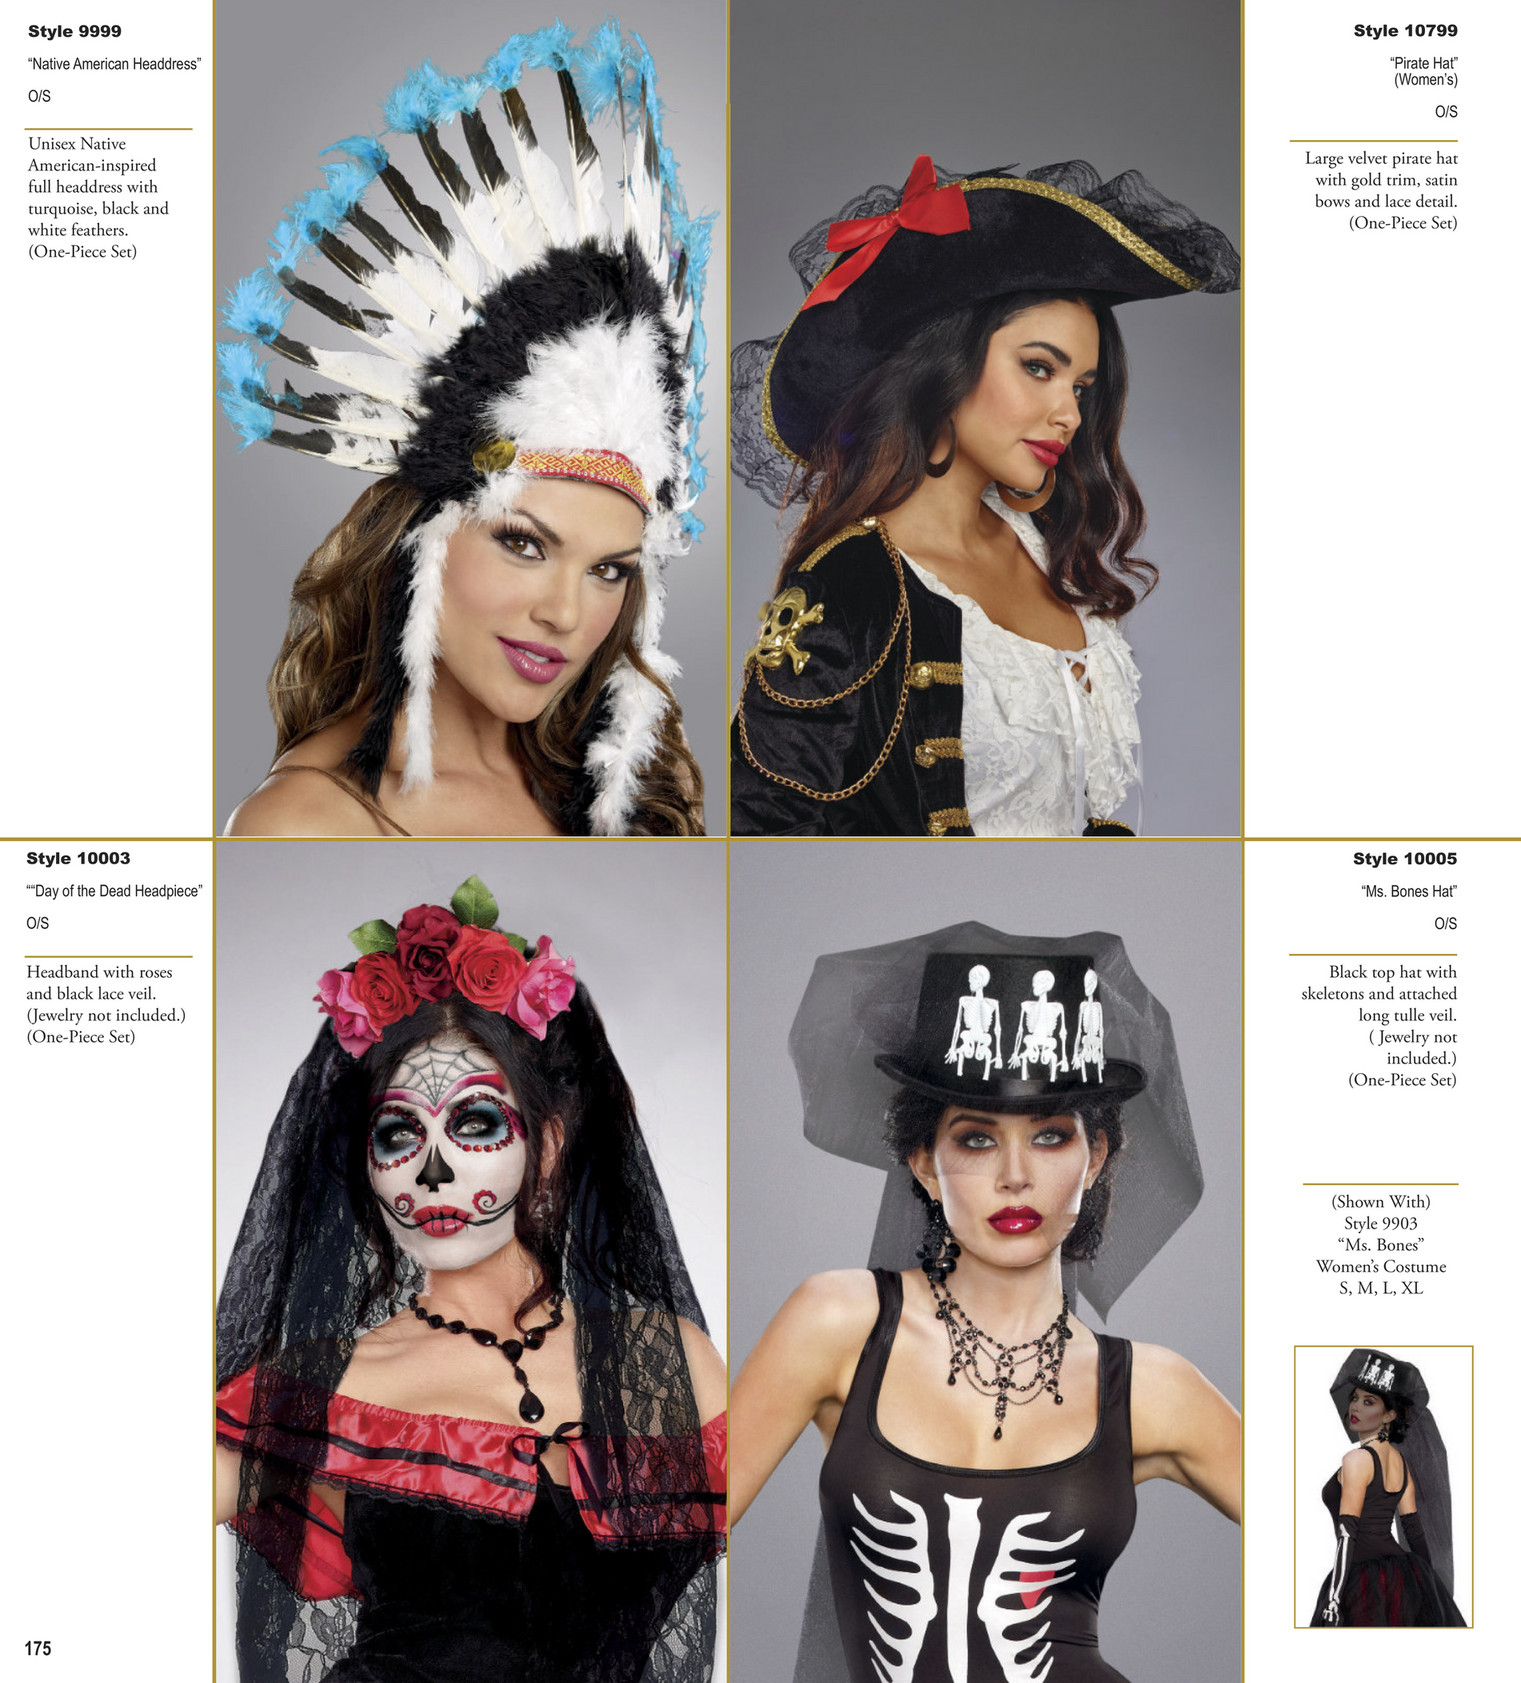 New Dreamgirl 10005 Black Top Hat With Skeletons And Veil